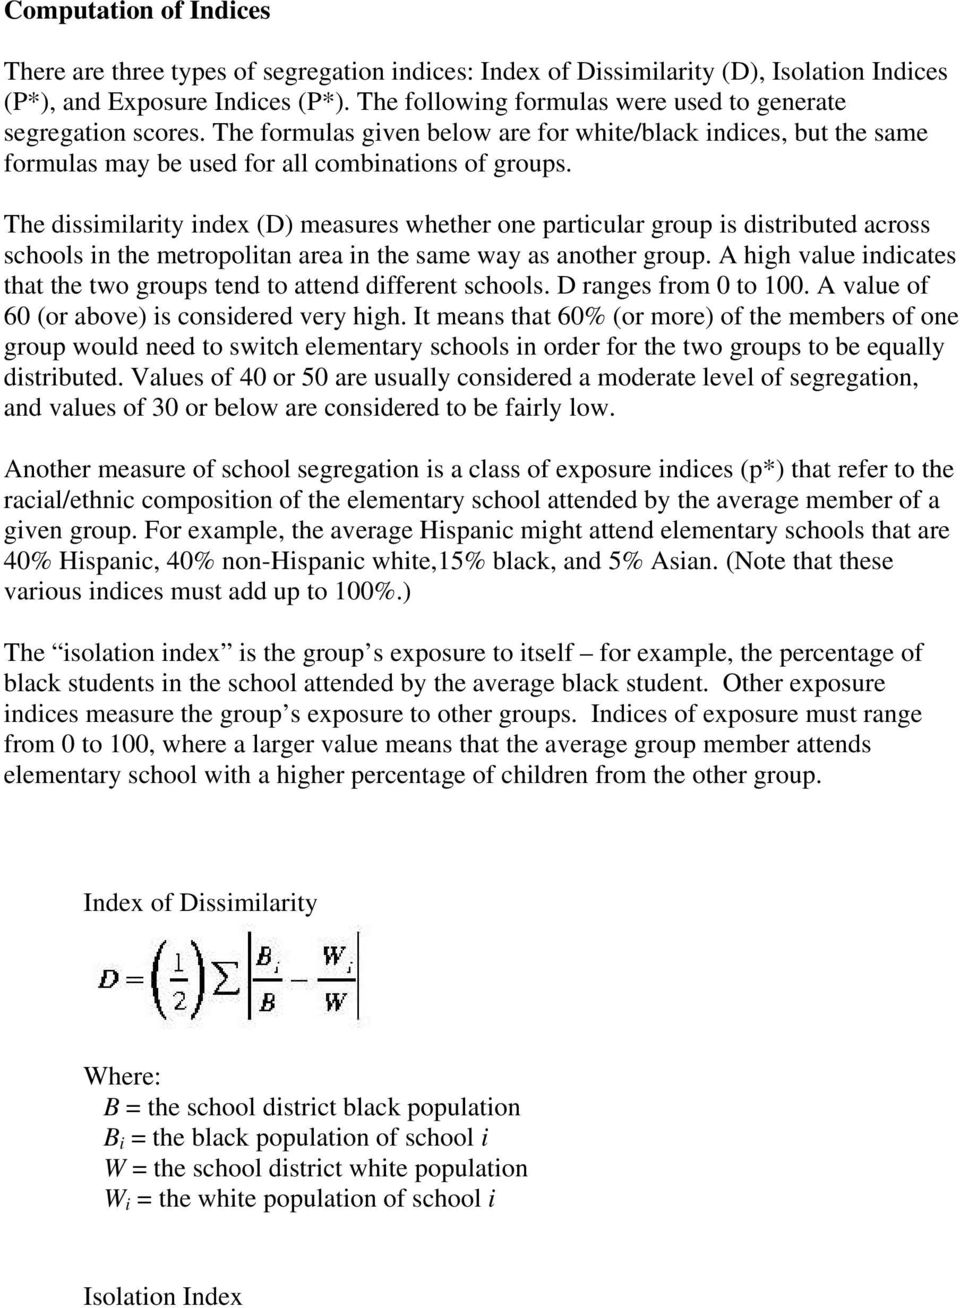 The dissimilarity index (D) measures whether one particular group is distributed across schools in the metropolitan area in the same way as another group.